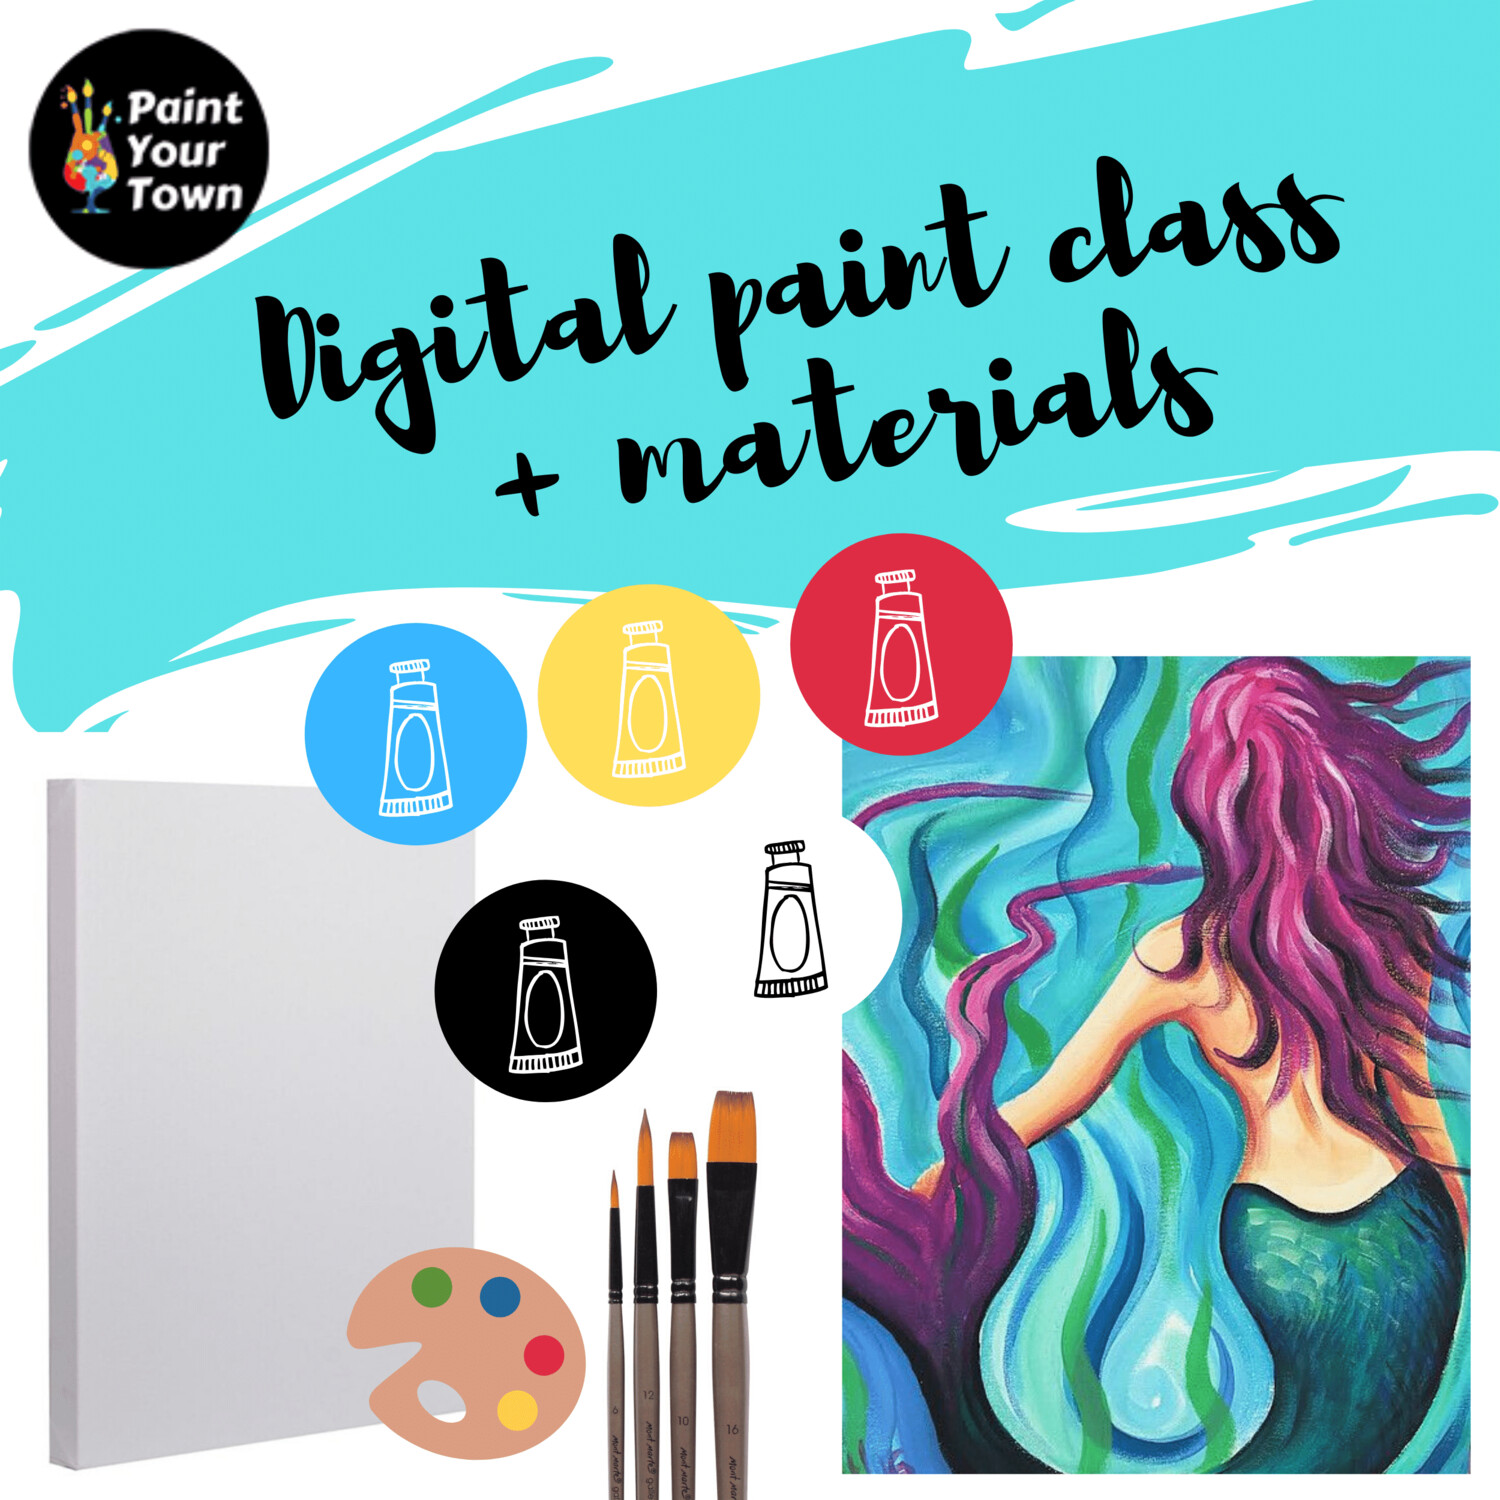 Mermaid - Virtual class  + written instructions + supplies